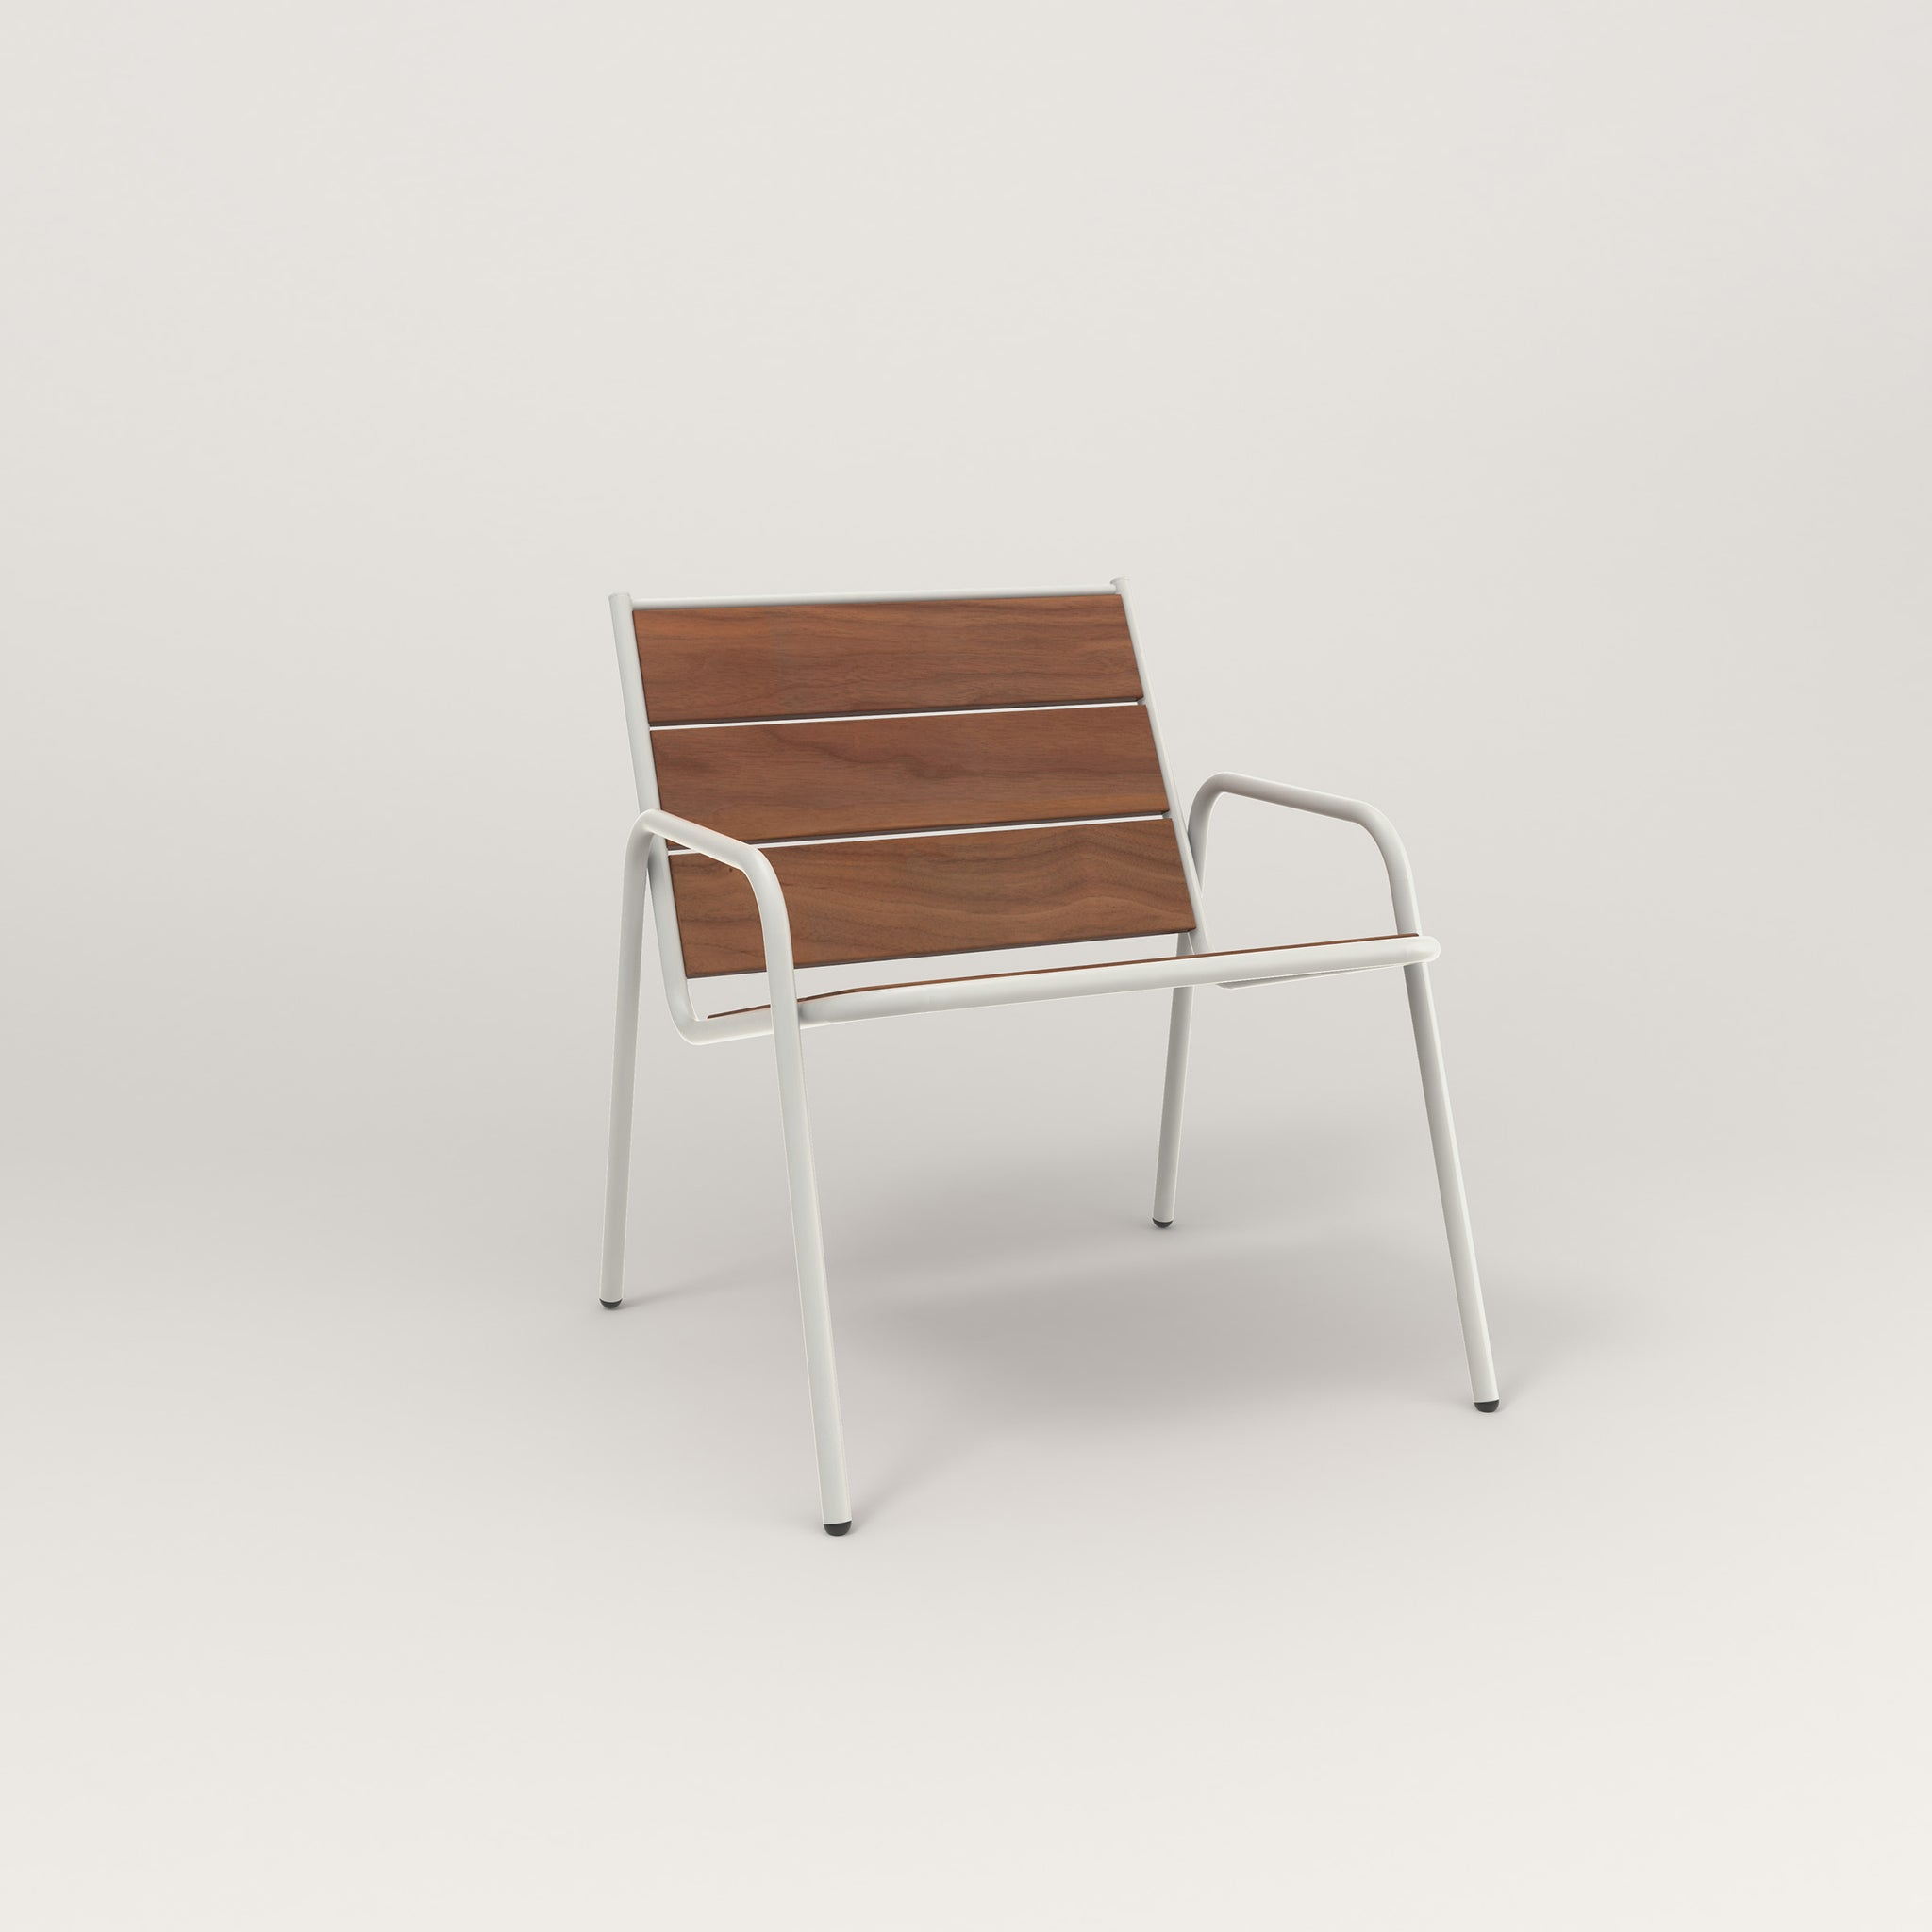 RAD Signature Lounge Chair in slatted wood and white powder coat.